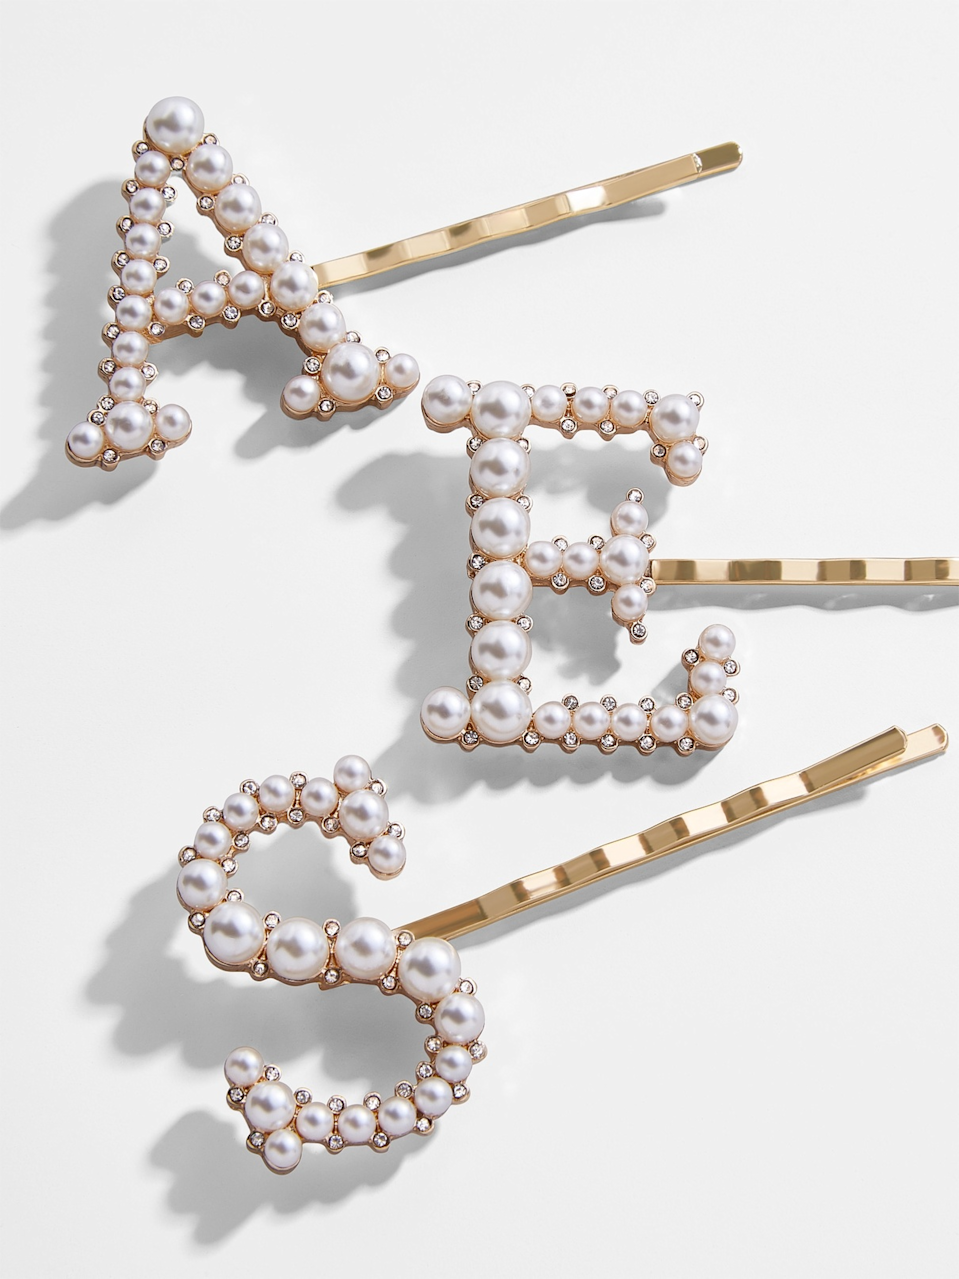 """<h3>Baublebar Baroque Initial Pearl Hair Pin</h3><br>Hair barrettes are fun, but pearled initial iterations of the trend are the best. <br><br>Shop <strong><em><a href=""""https://www.baublebar.com"""" rel=""""nofollow noopener"""" target=""""_blank"""" data-ylk=""""slk:Baublebar"""" class=""""link rapid-noclick-resp"""">Baublebar</a></em></strong><br><br><strong>BaubleBar</strong> Baroque Initial Pearl Hair Pin, $, available at <a href=""""https://go.skimresources.com/?id=30283X879131&url=https%3A%2F%2Fwww.baublebar.com%2Fproduct%2F49433-baroque-initial-pearl-hair-pin"""" rel=""""nofollow noopener"""" target=""""_blank"""" data-ylk=""""slk:BaubleBar"""" class=""""link rapid-noclick-resp"""">BaubleBar</a>"""